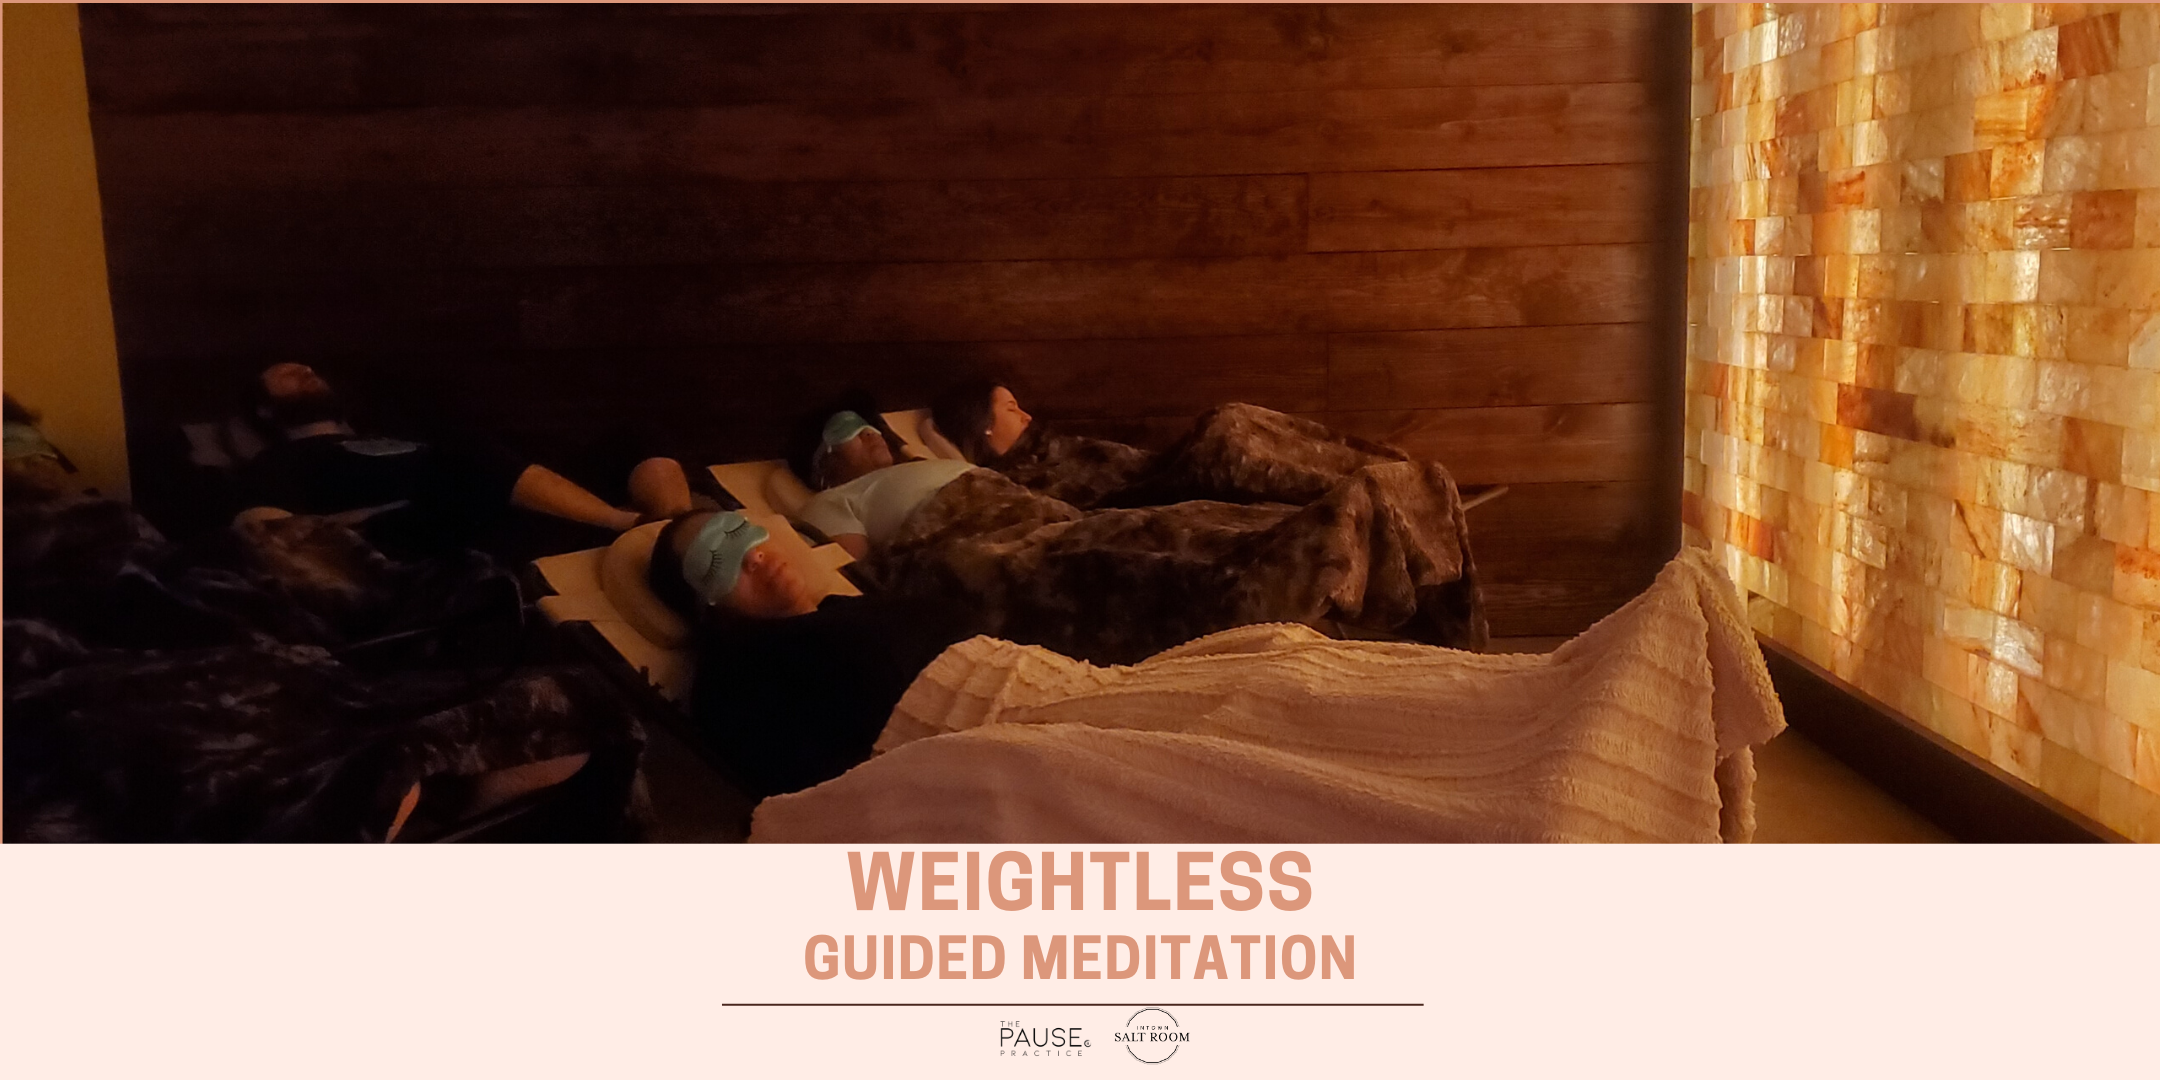 WEIGHTLESS - A Guided Meditation & Dry Salt Therapy Experience with The Pause Practice at Intown Salt Room